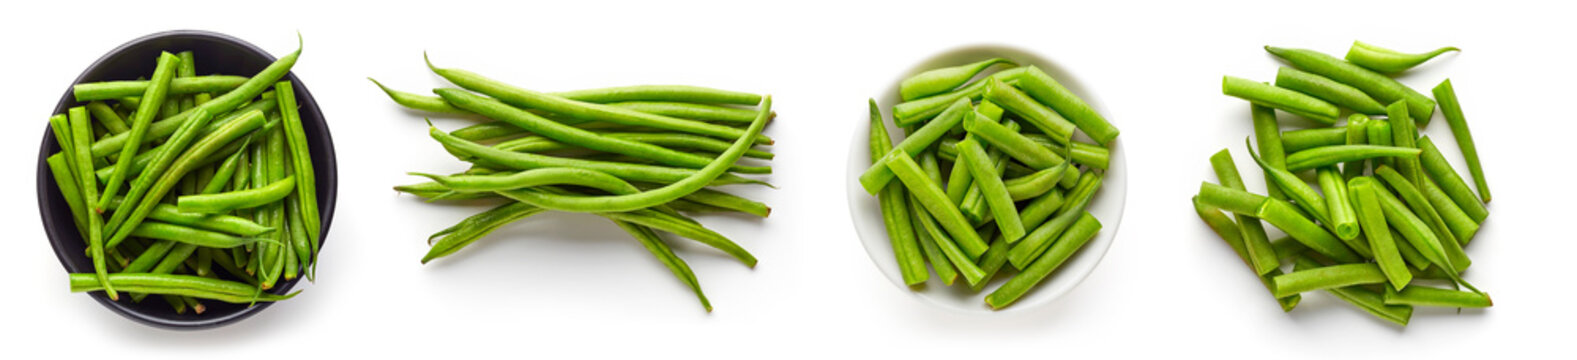 Green beans isolated on white from above